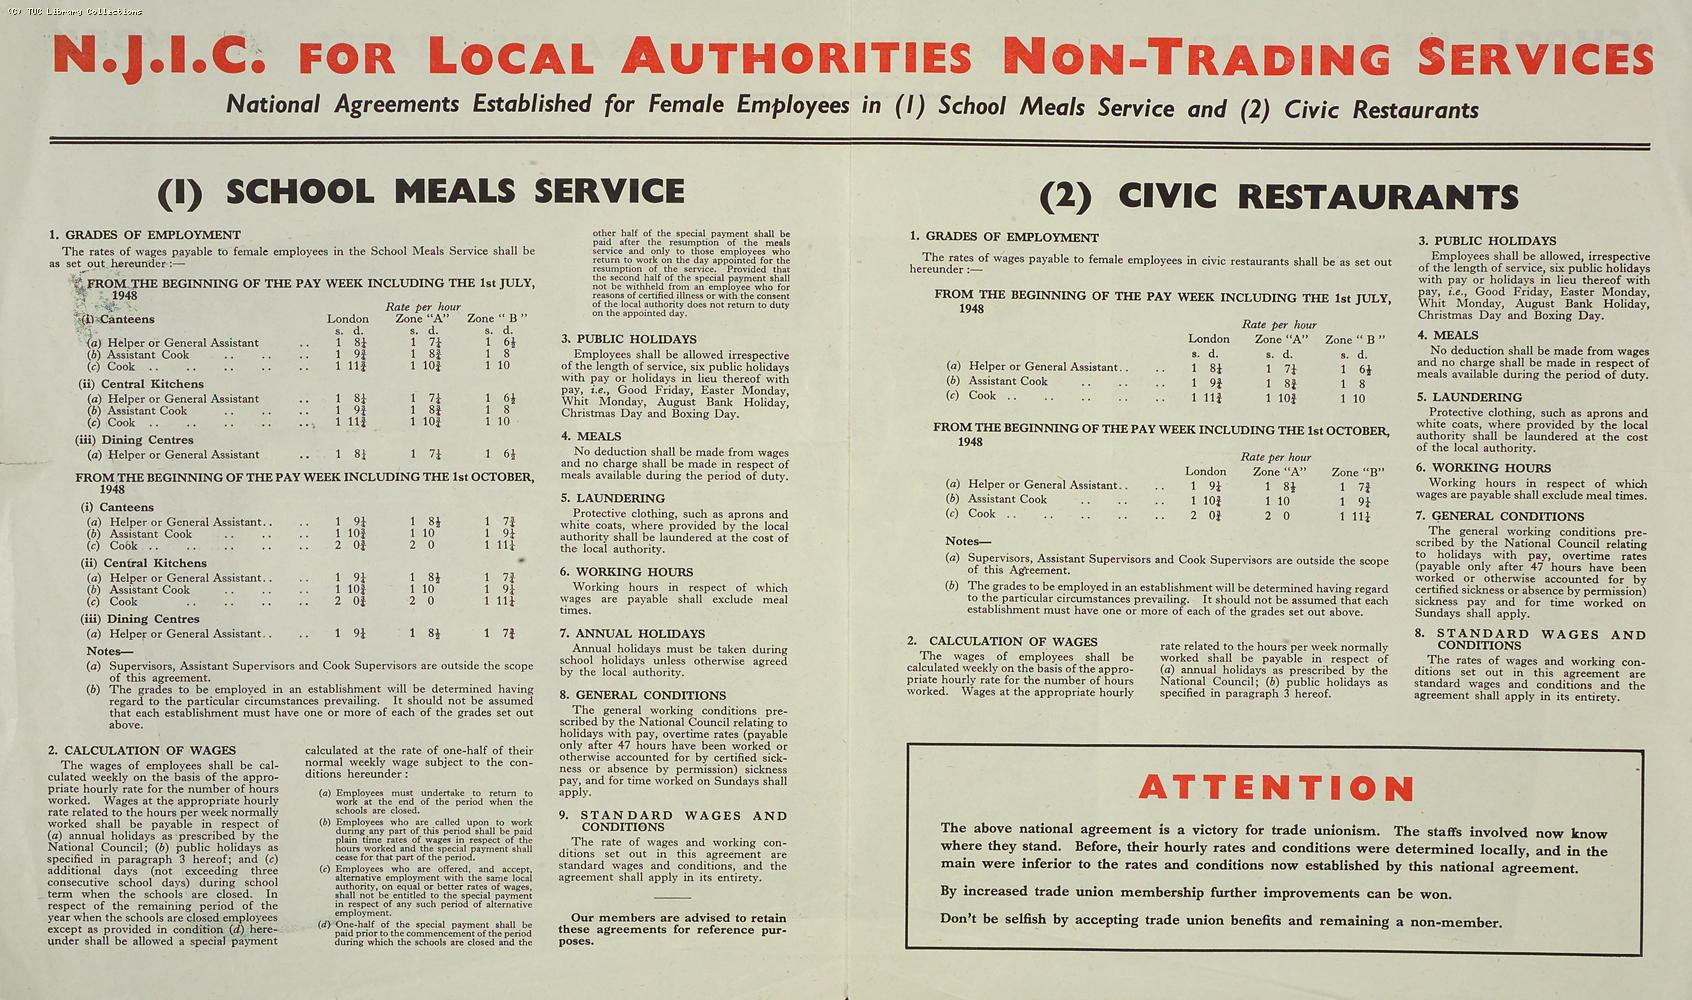 Pay agreement for Civic Restaurant and School Meals Staff, 1948